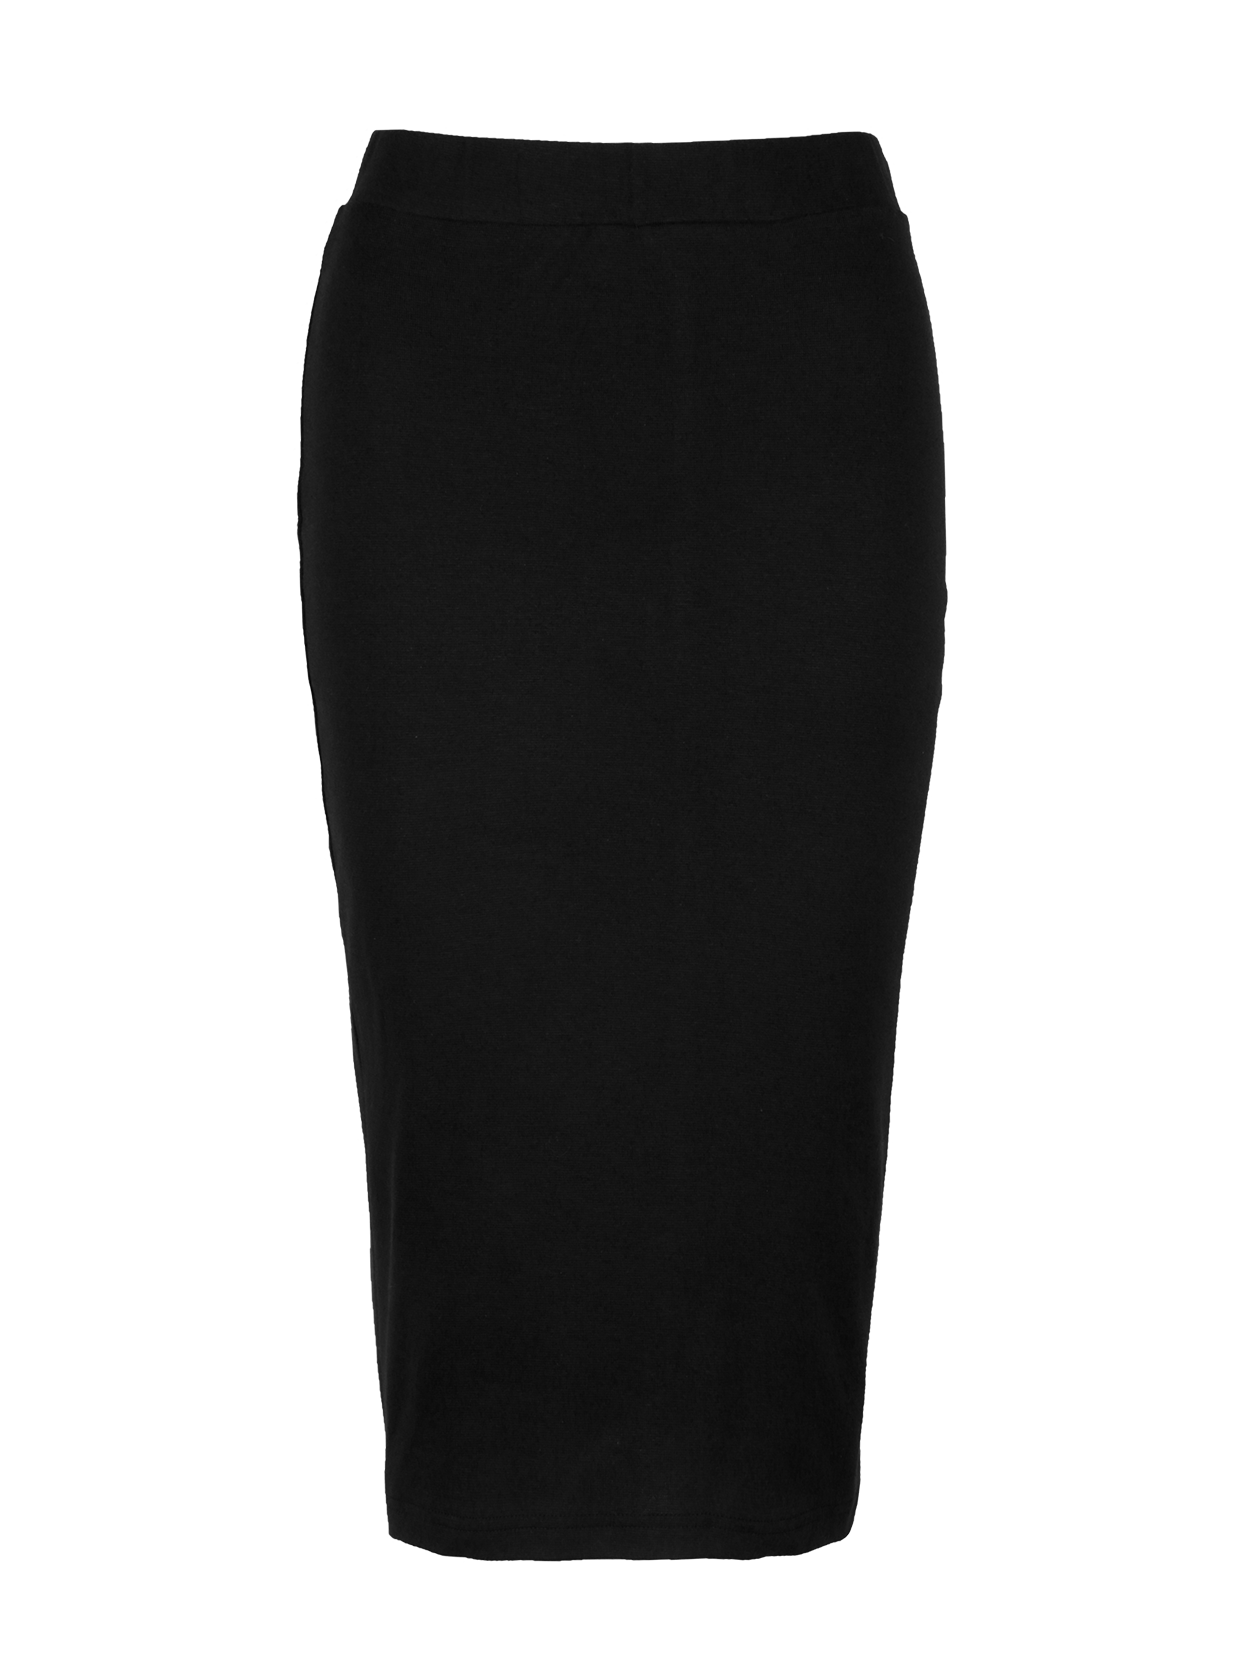 Womens Skirt SKINNY BASIC<br><br>size: M<br>color: Black<br>gender: unisex